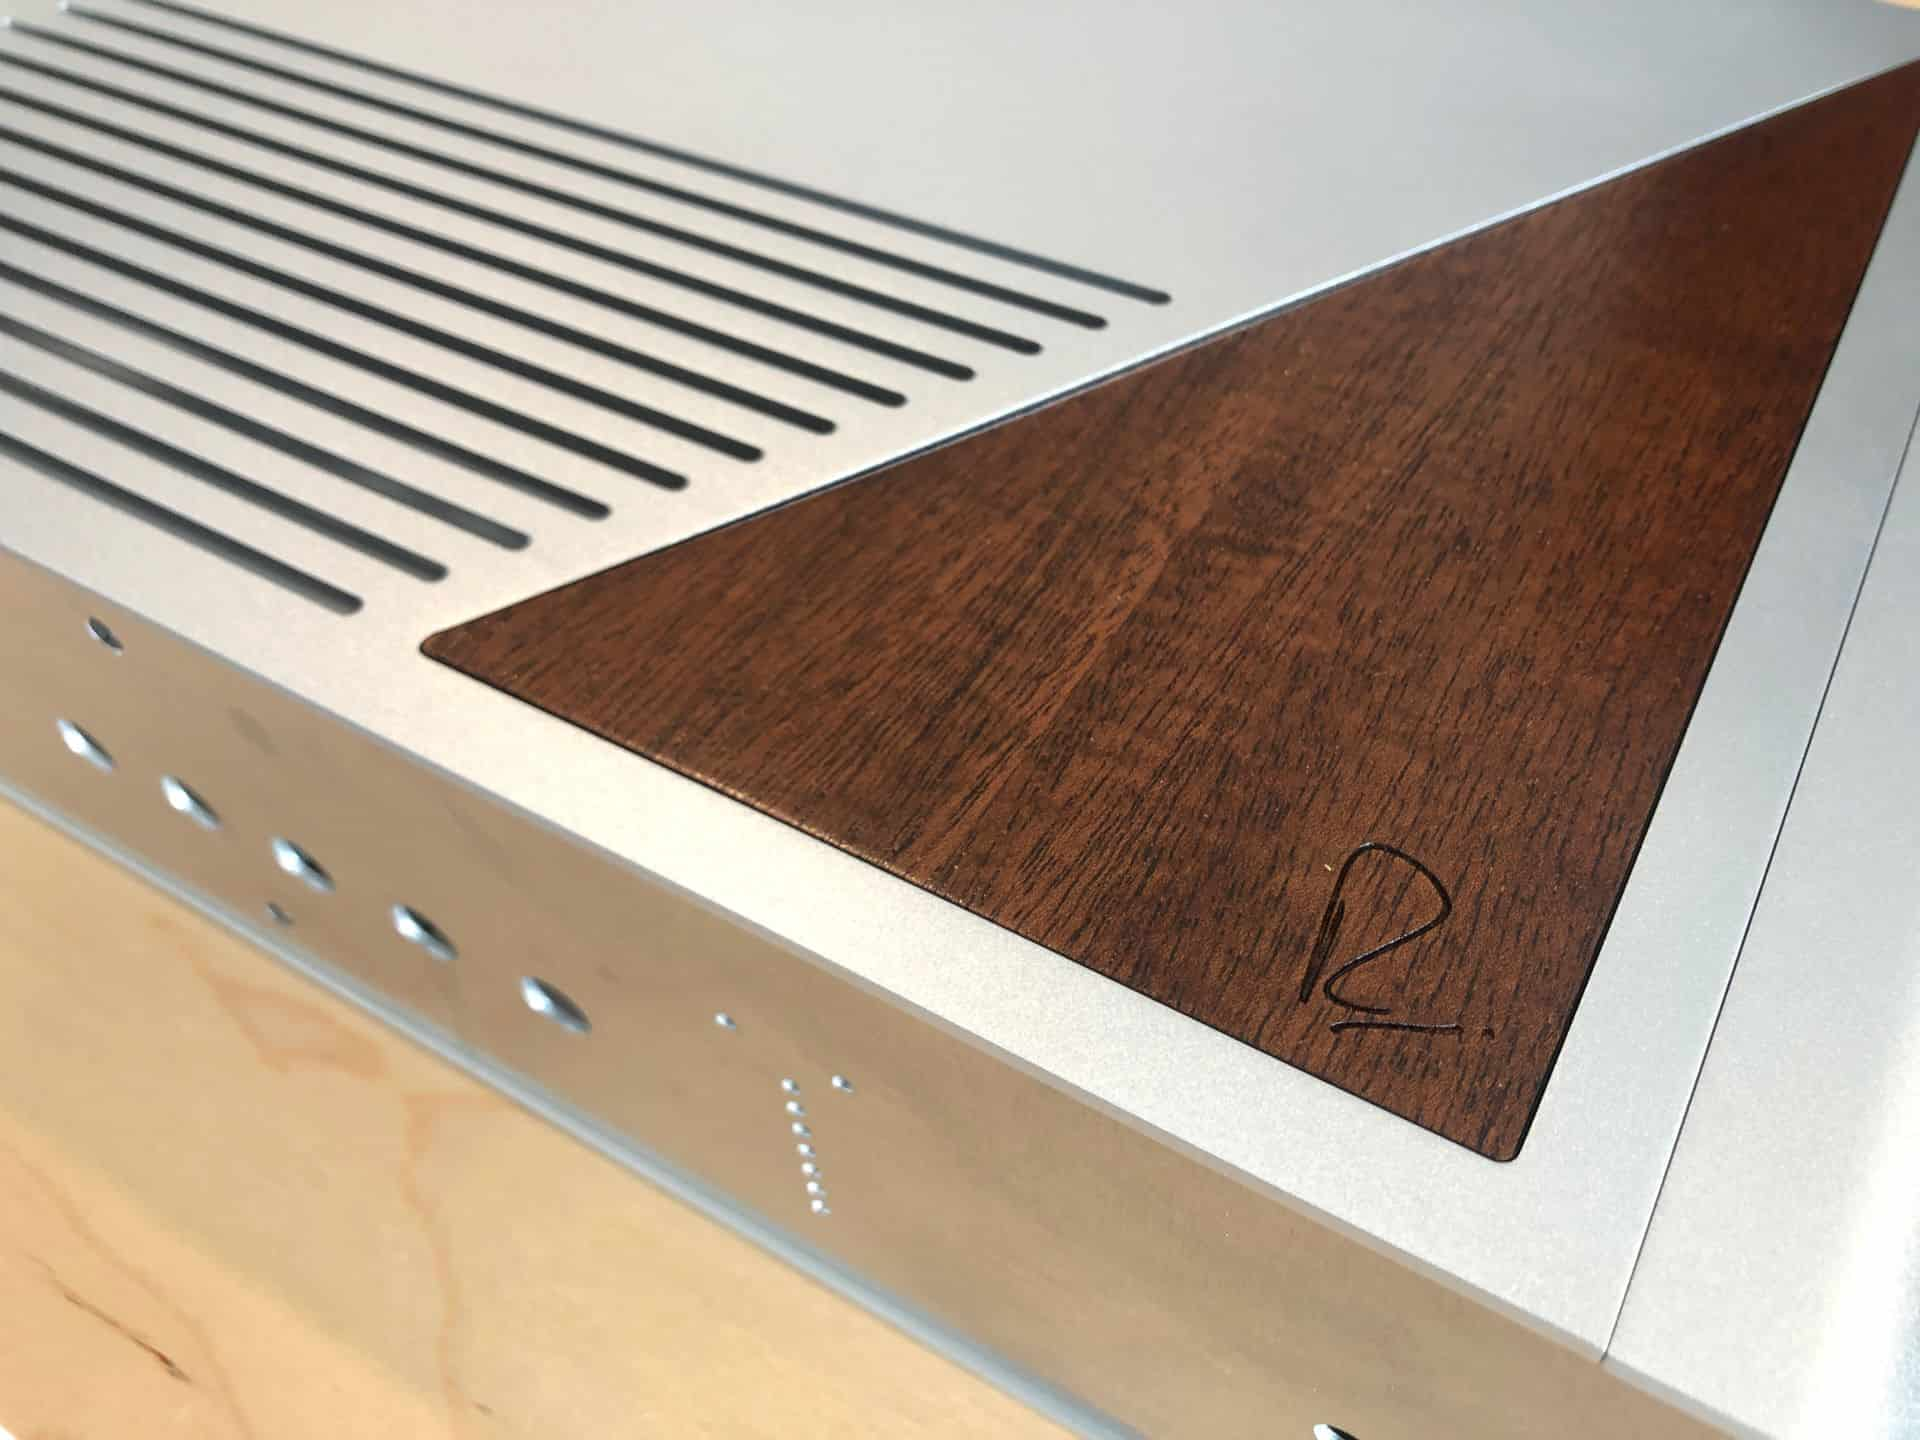 Close up of the wood insert on the Rupert Neve Design DAC